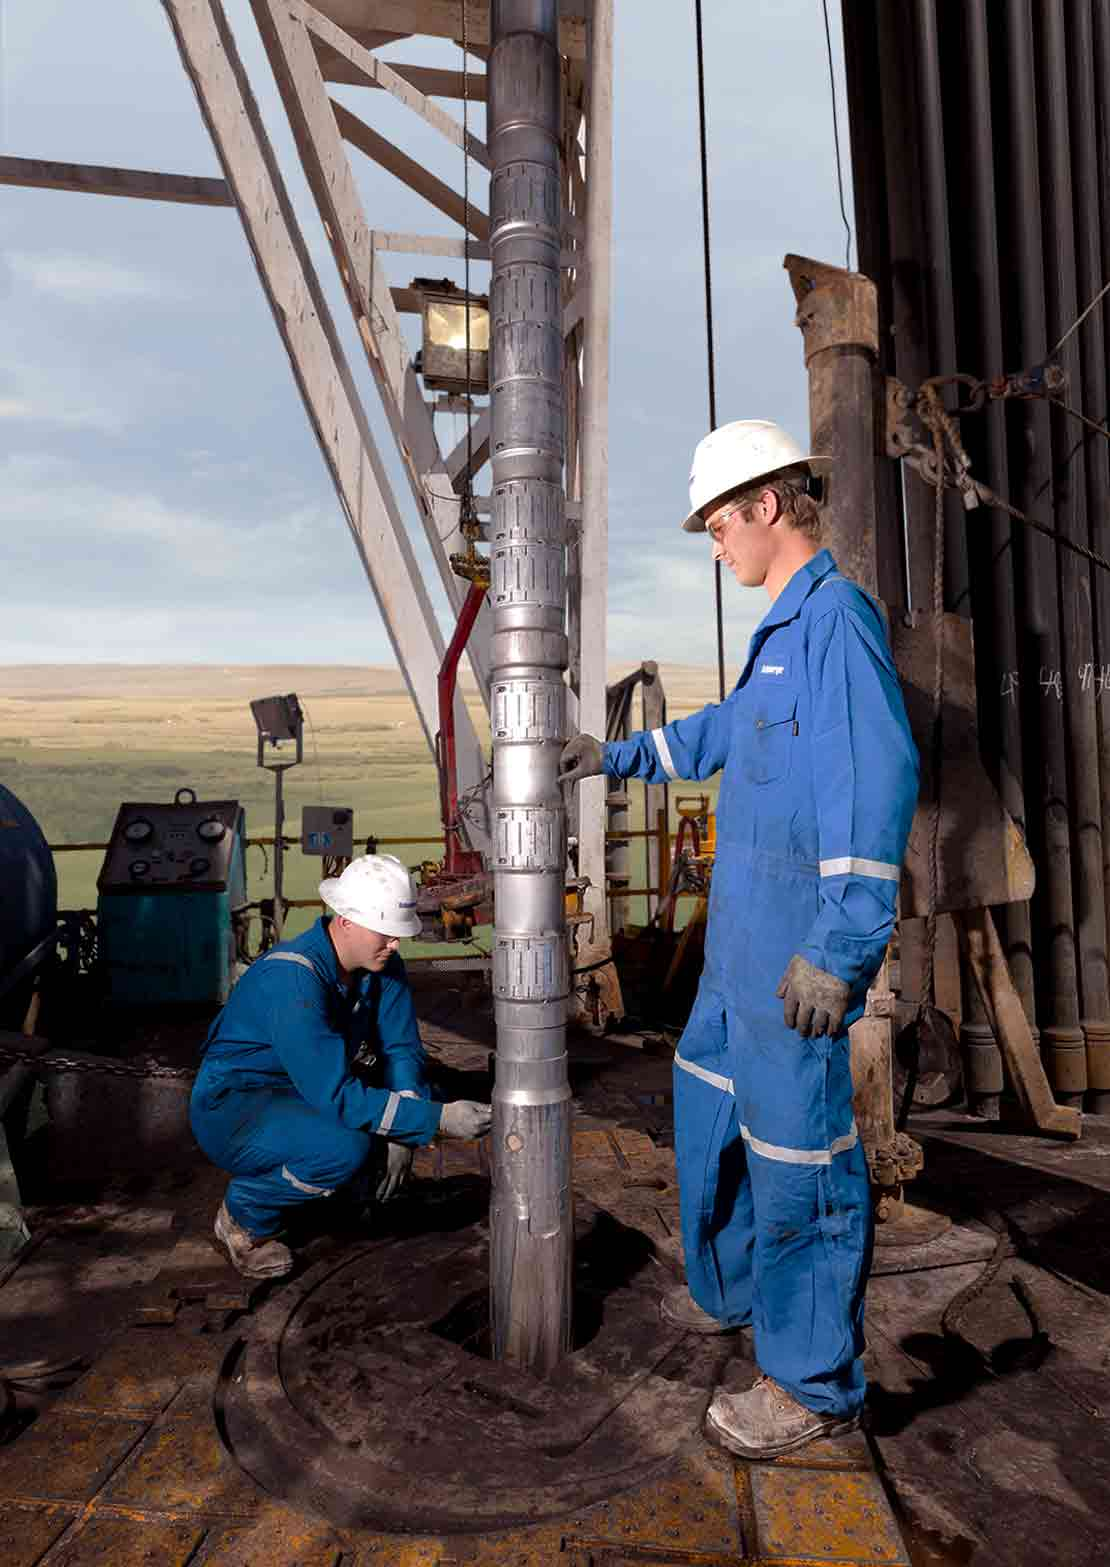 Two Schlumberger technicians adjust an LWD tool on a drilling rig floor